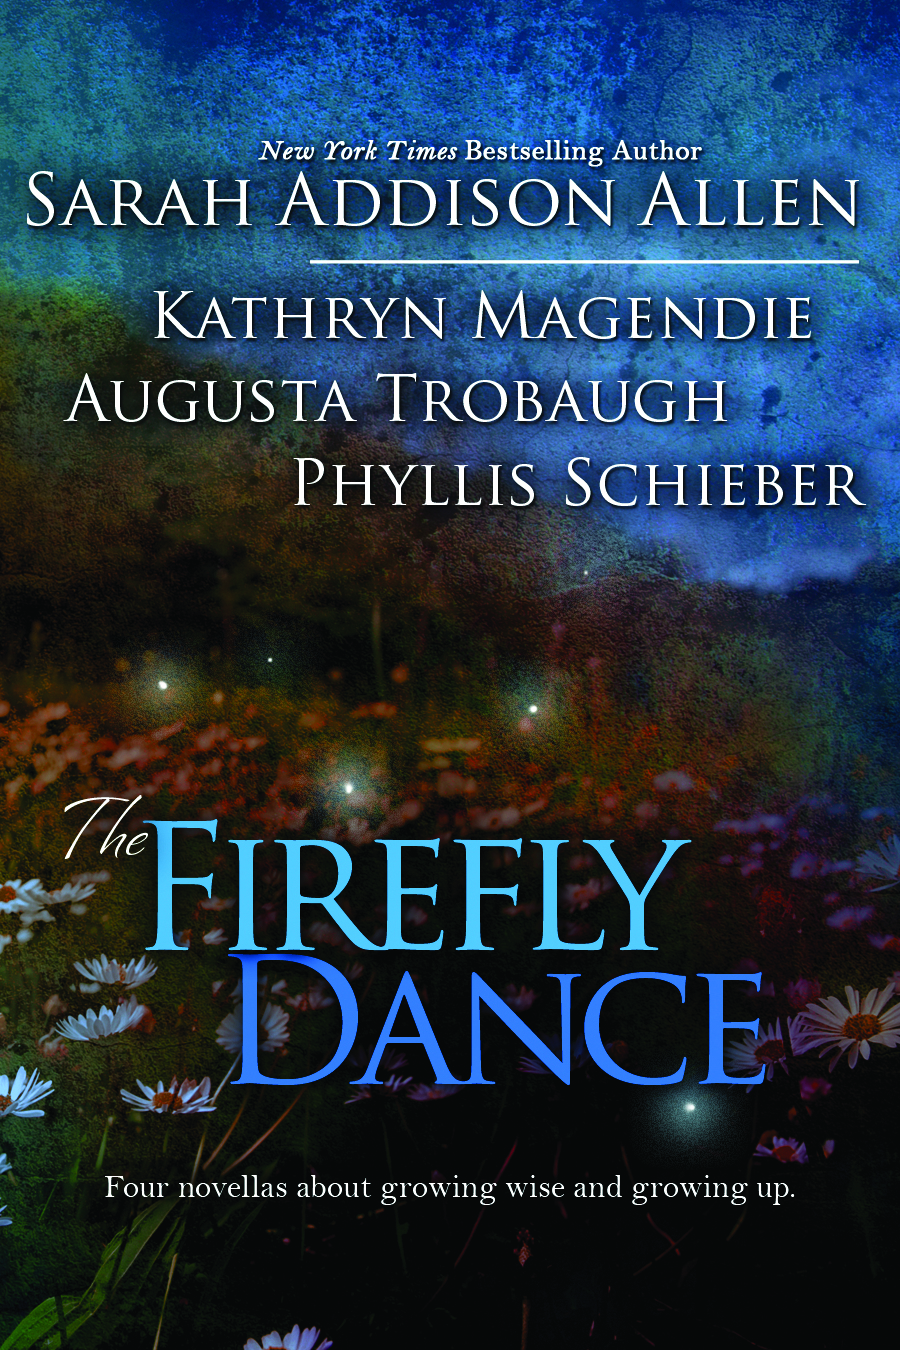 The Firefly Dance by Sarah Addison Allen | Reviewed on Clear Eyes, Full Shelves